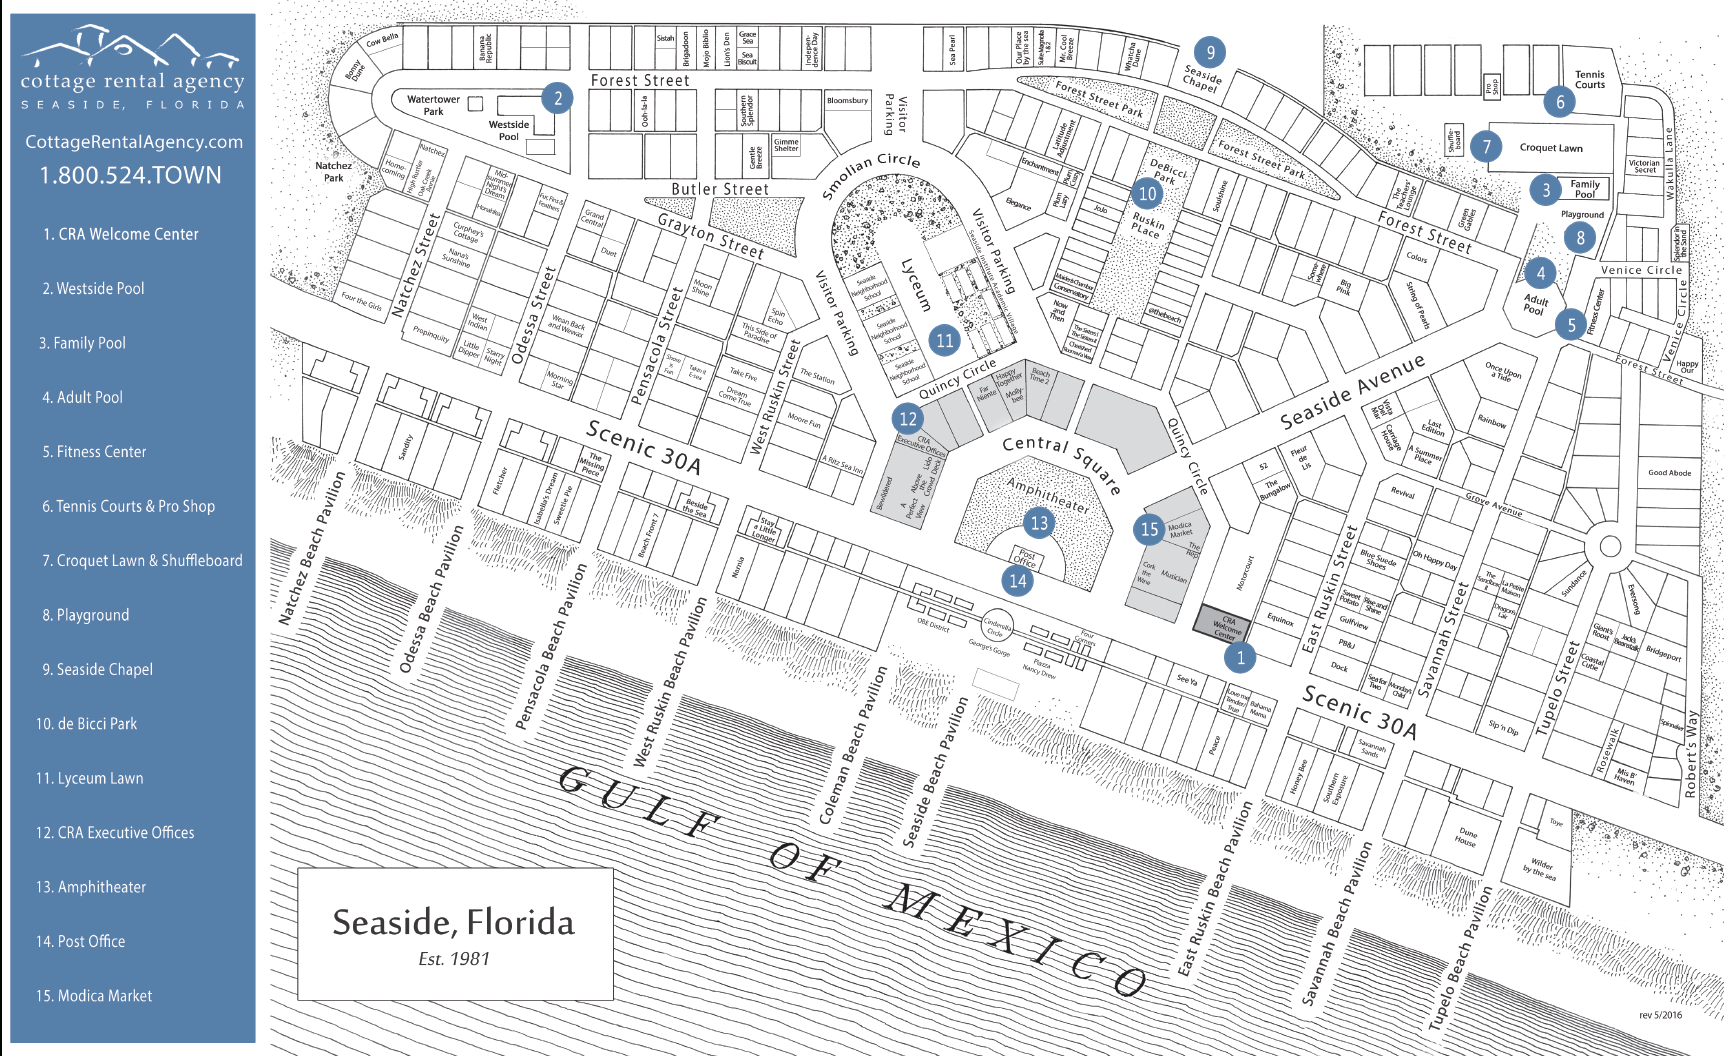 Seaside, Florida And 30A Guest Services – Seaside Florida Vacation - Where Is Seaside Florida On The Map